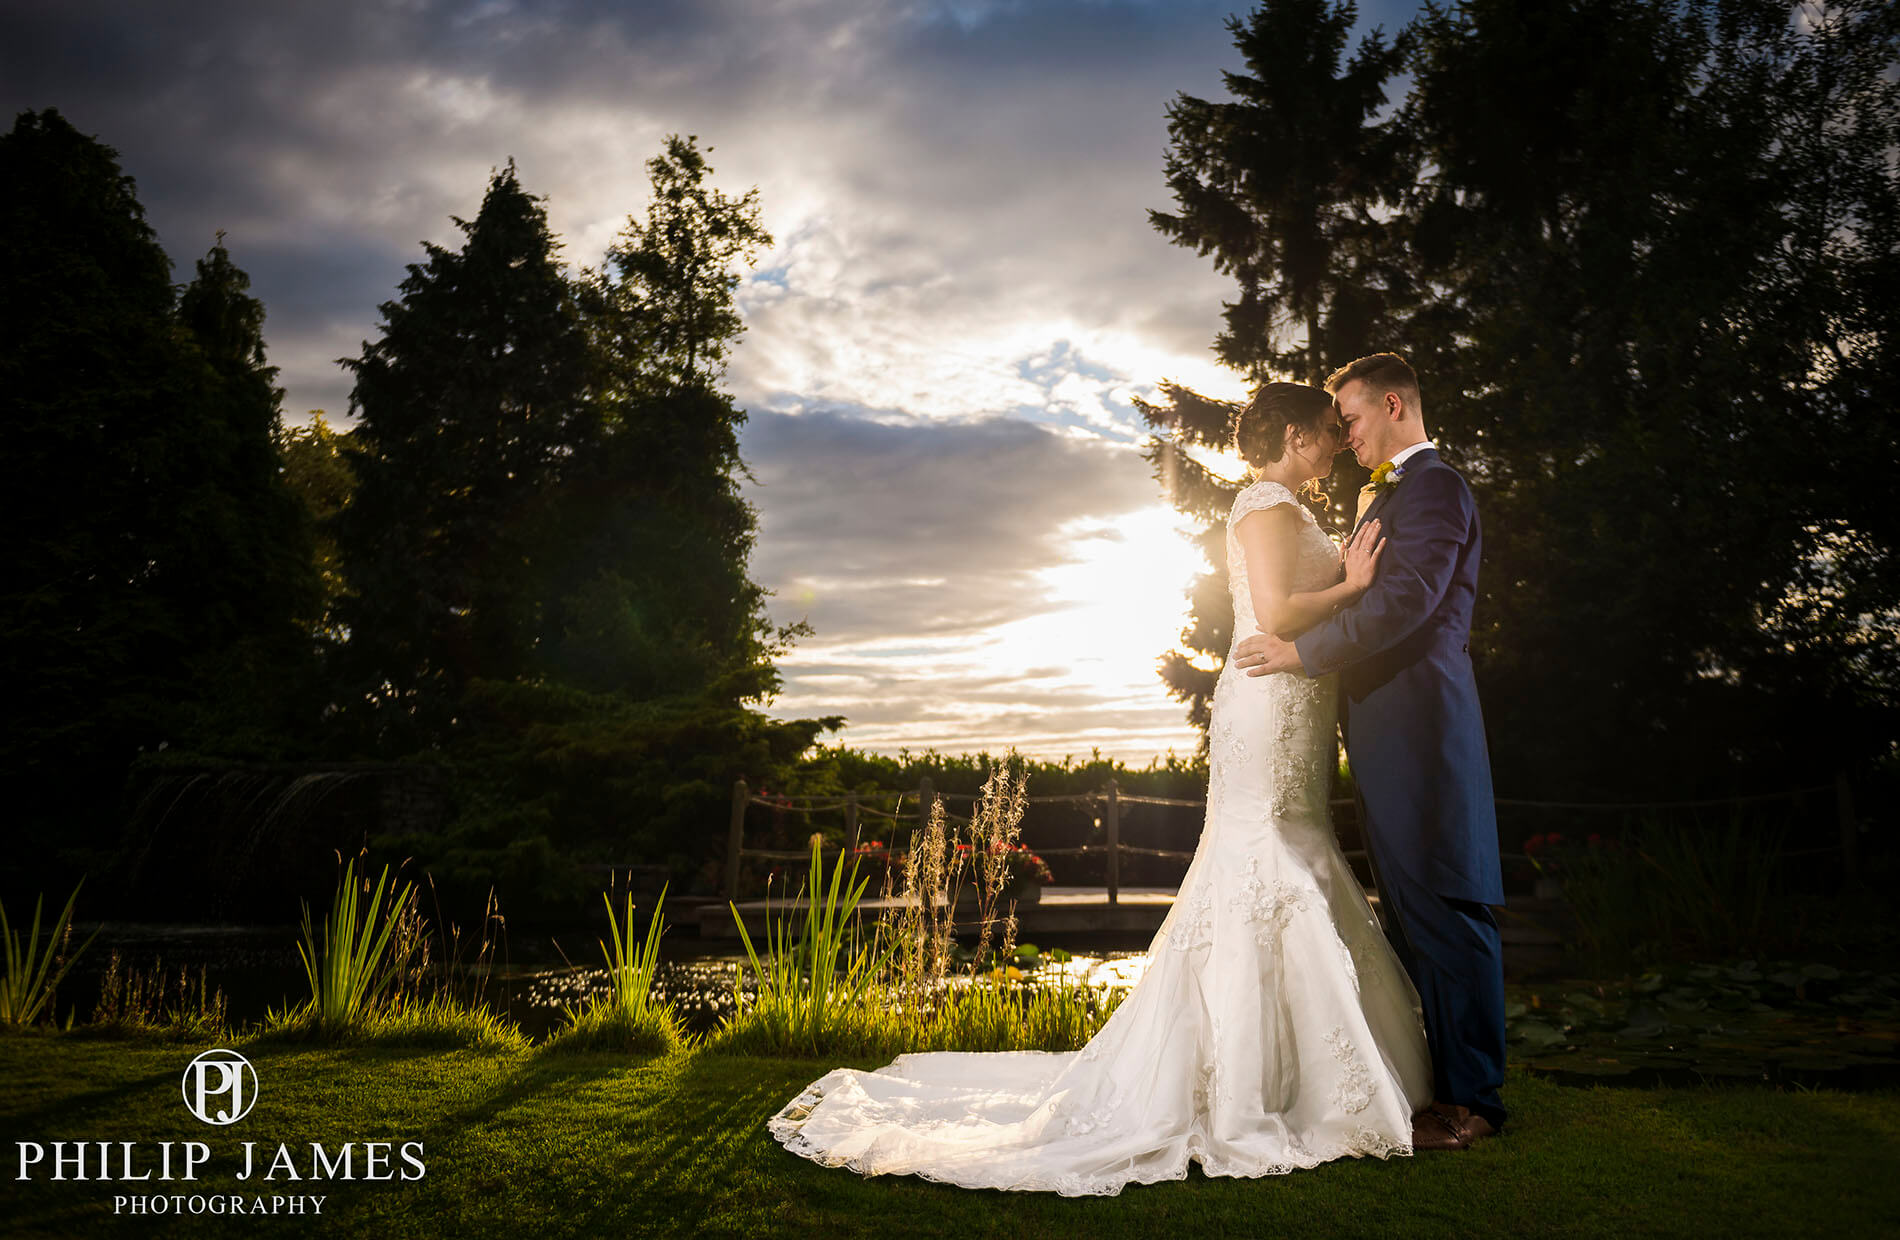 Birmingham Wedding Photographer - Philip James Photography based in Solihull (32 of 68)